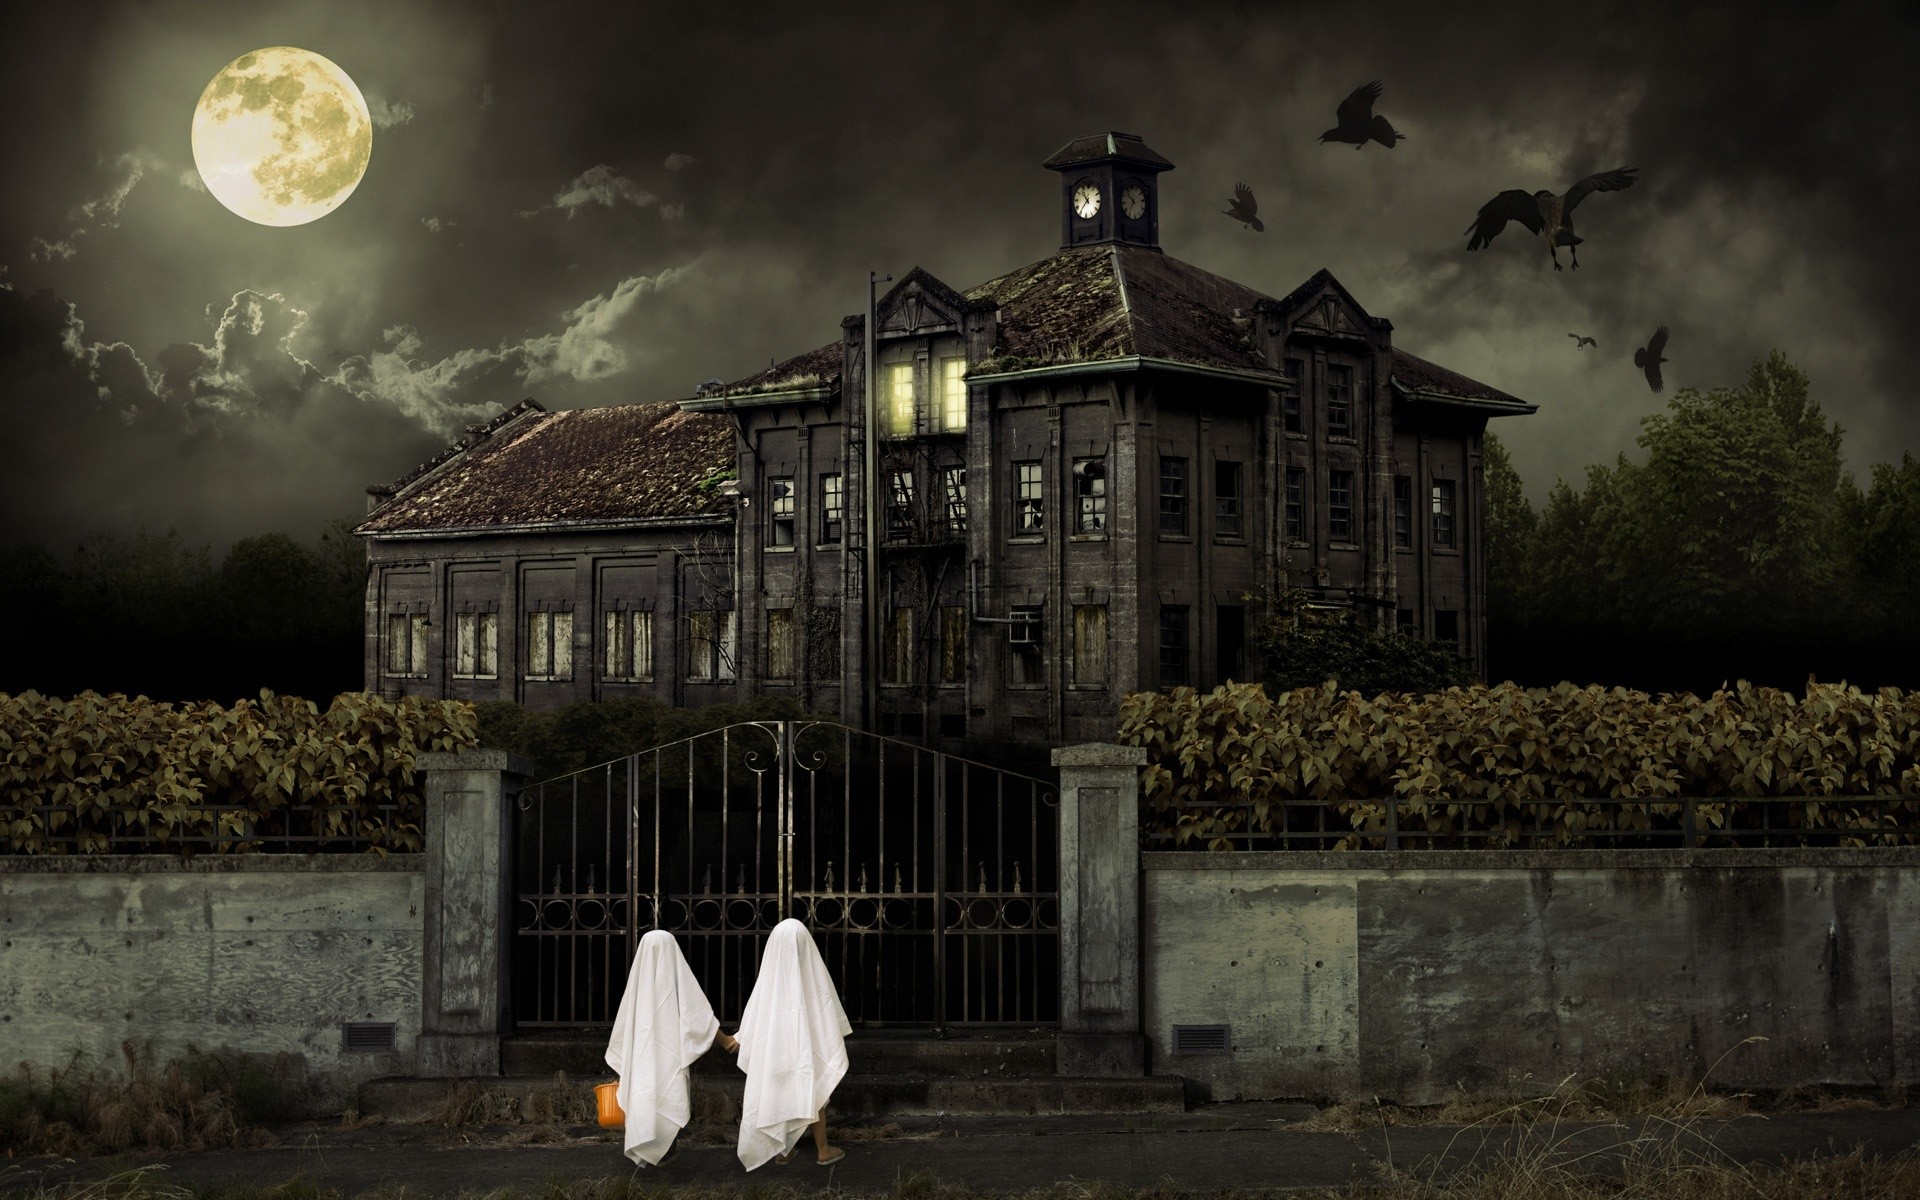 Preview Scary Animated Halloween Images by Asdrubal Limpkin